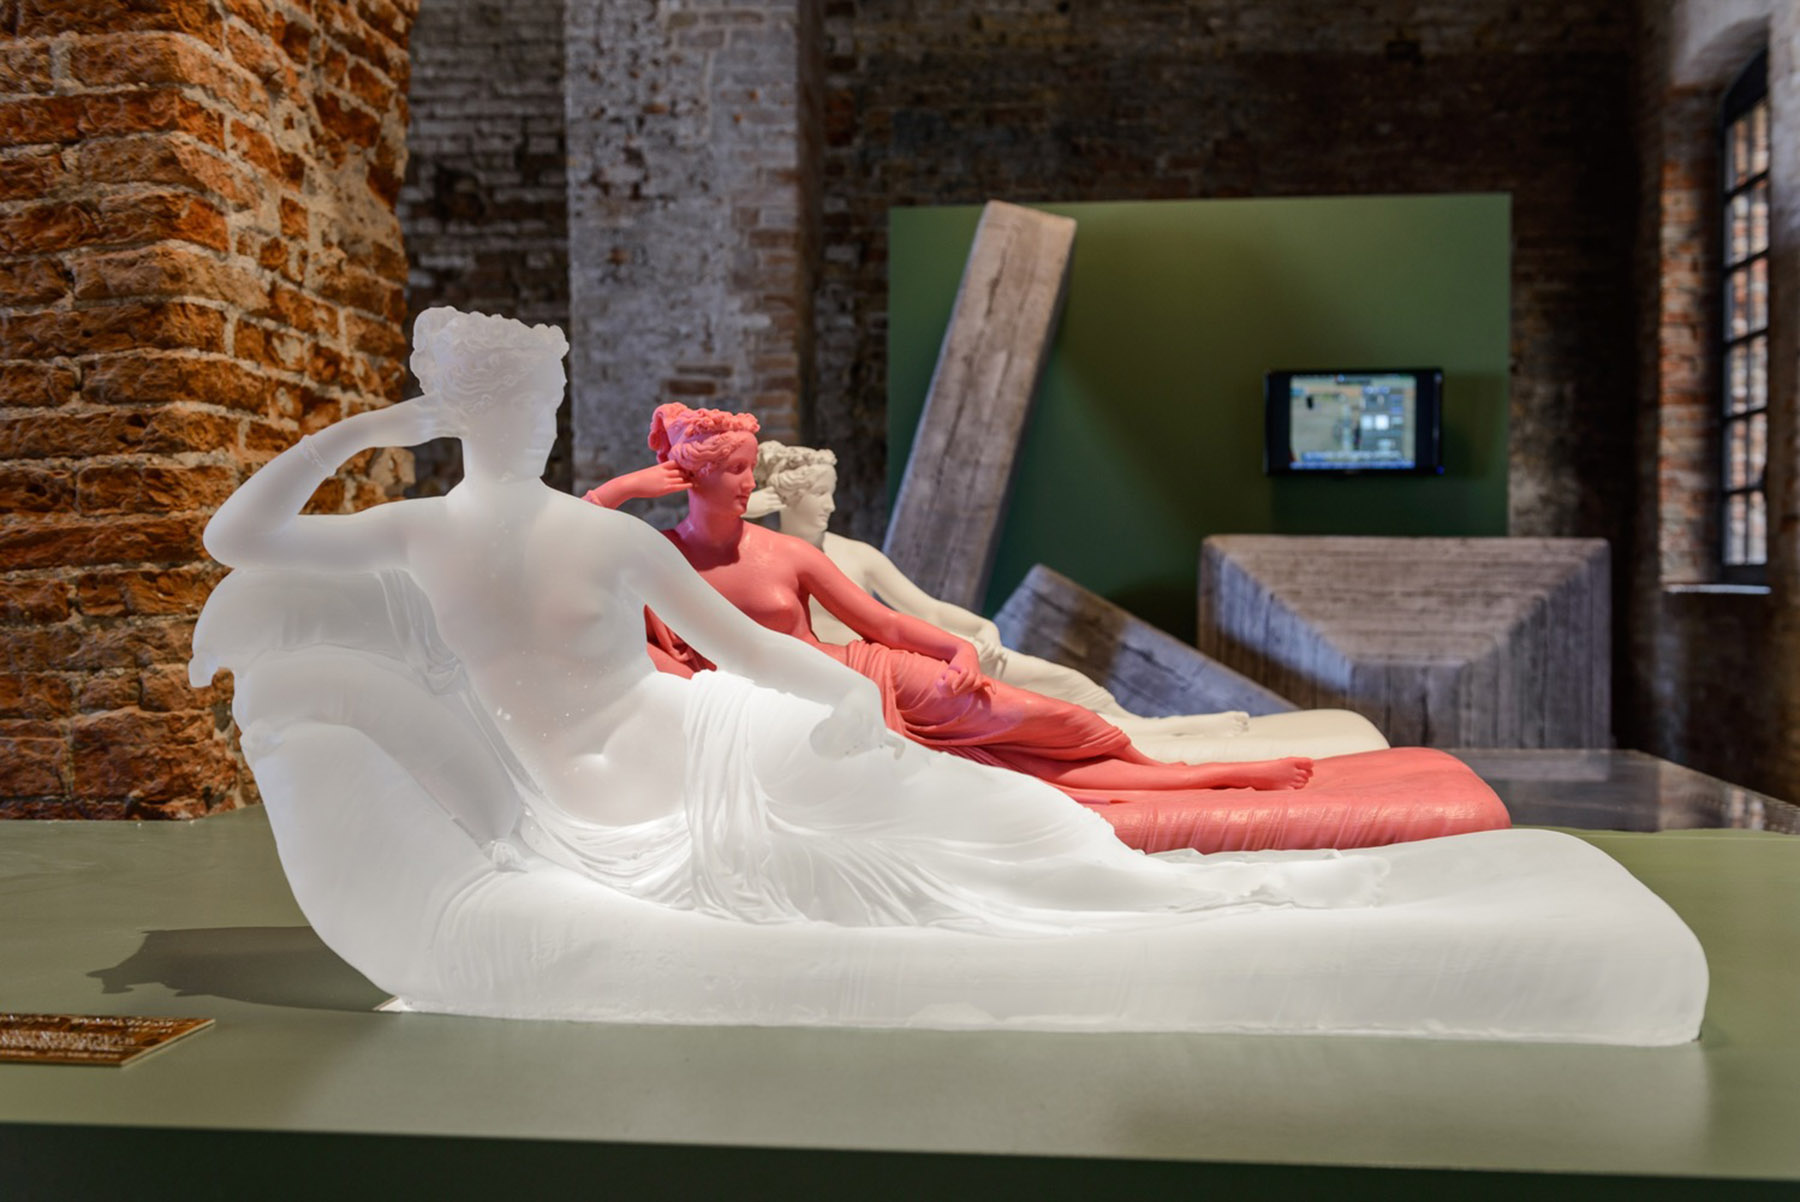 Photo by Andrea Avezzu. Image Courtesy of La Biennale di Venezia